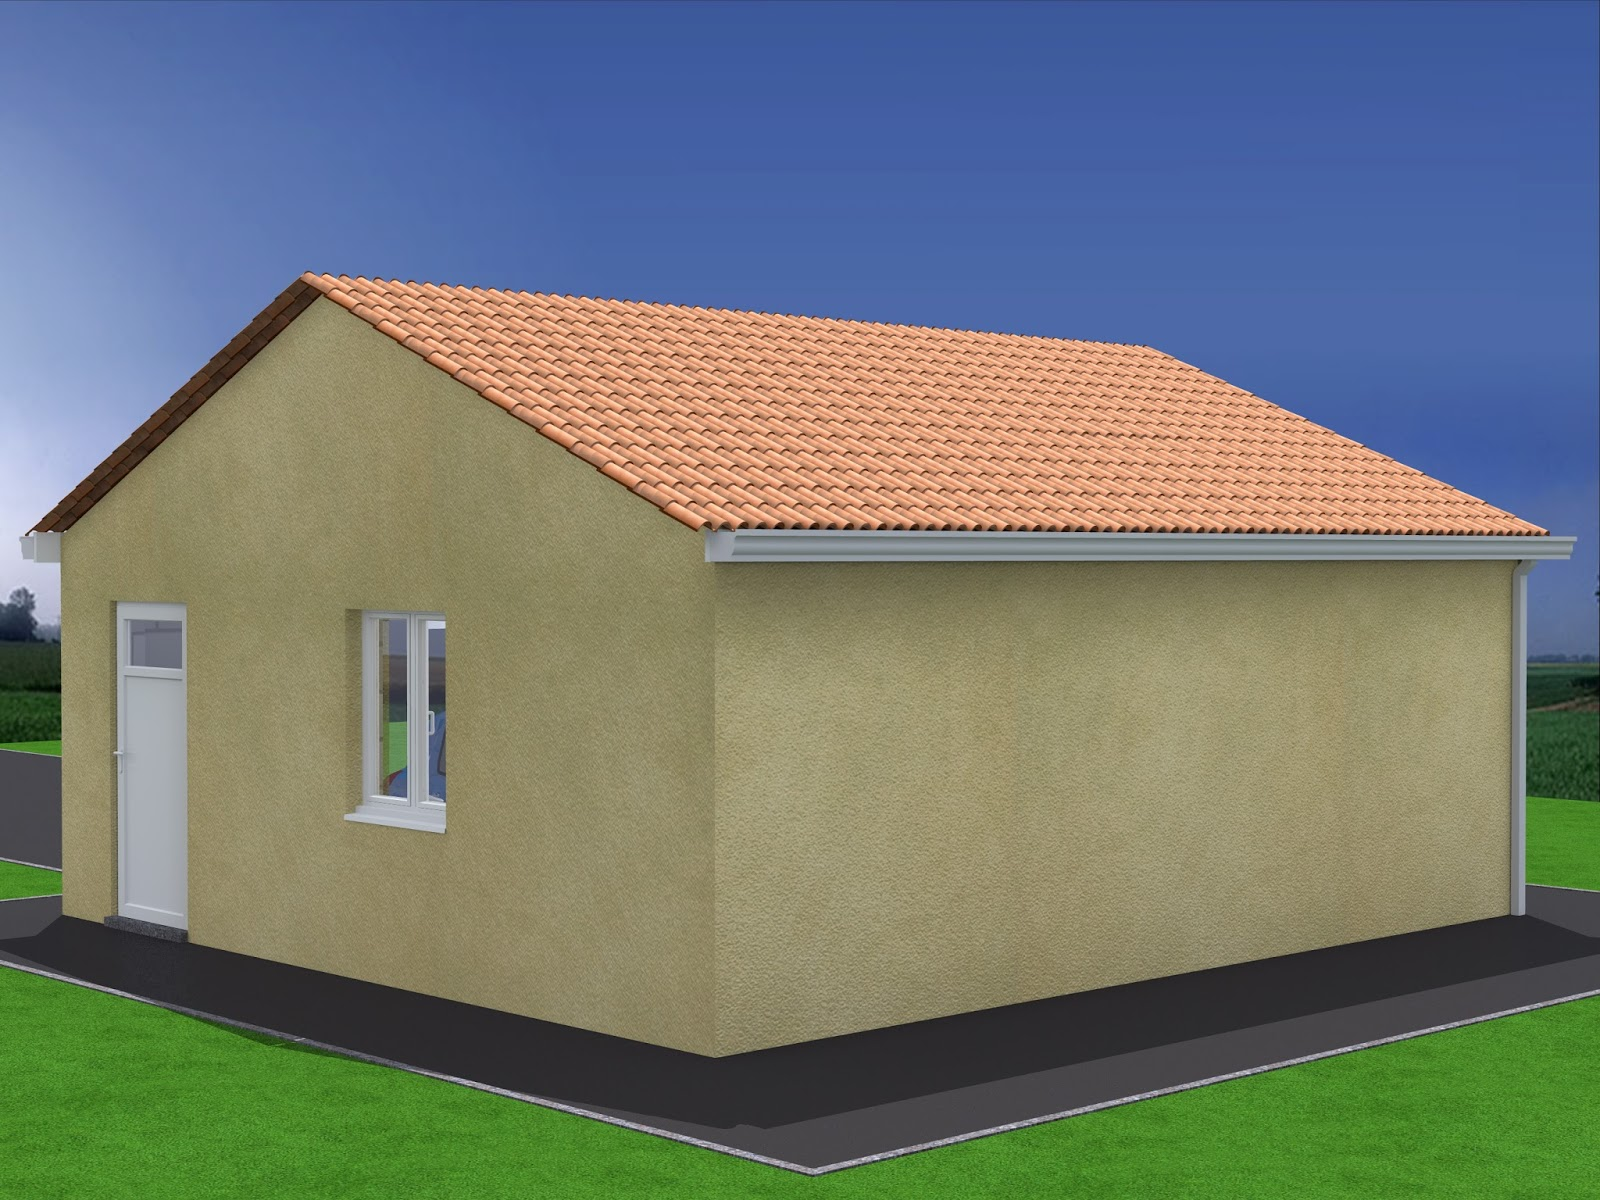 Projet de construction de garage double am nagements for Construction garage double